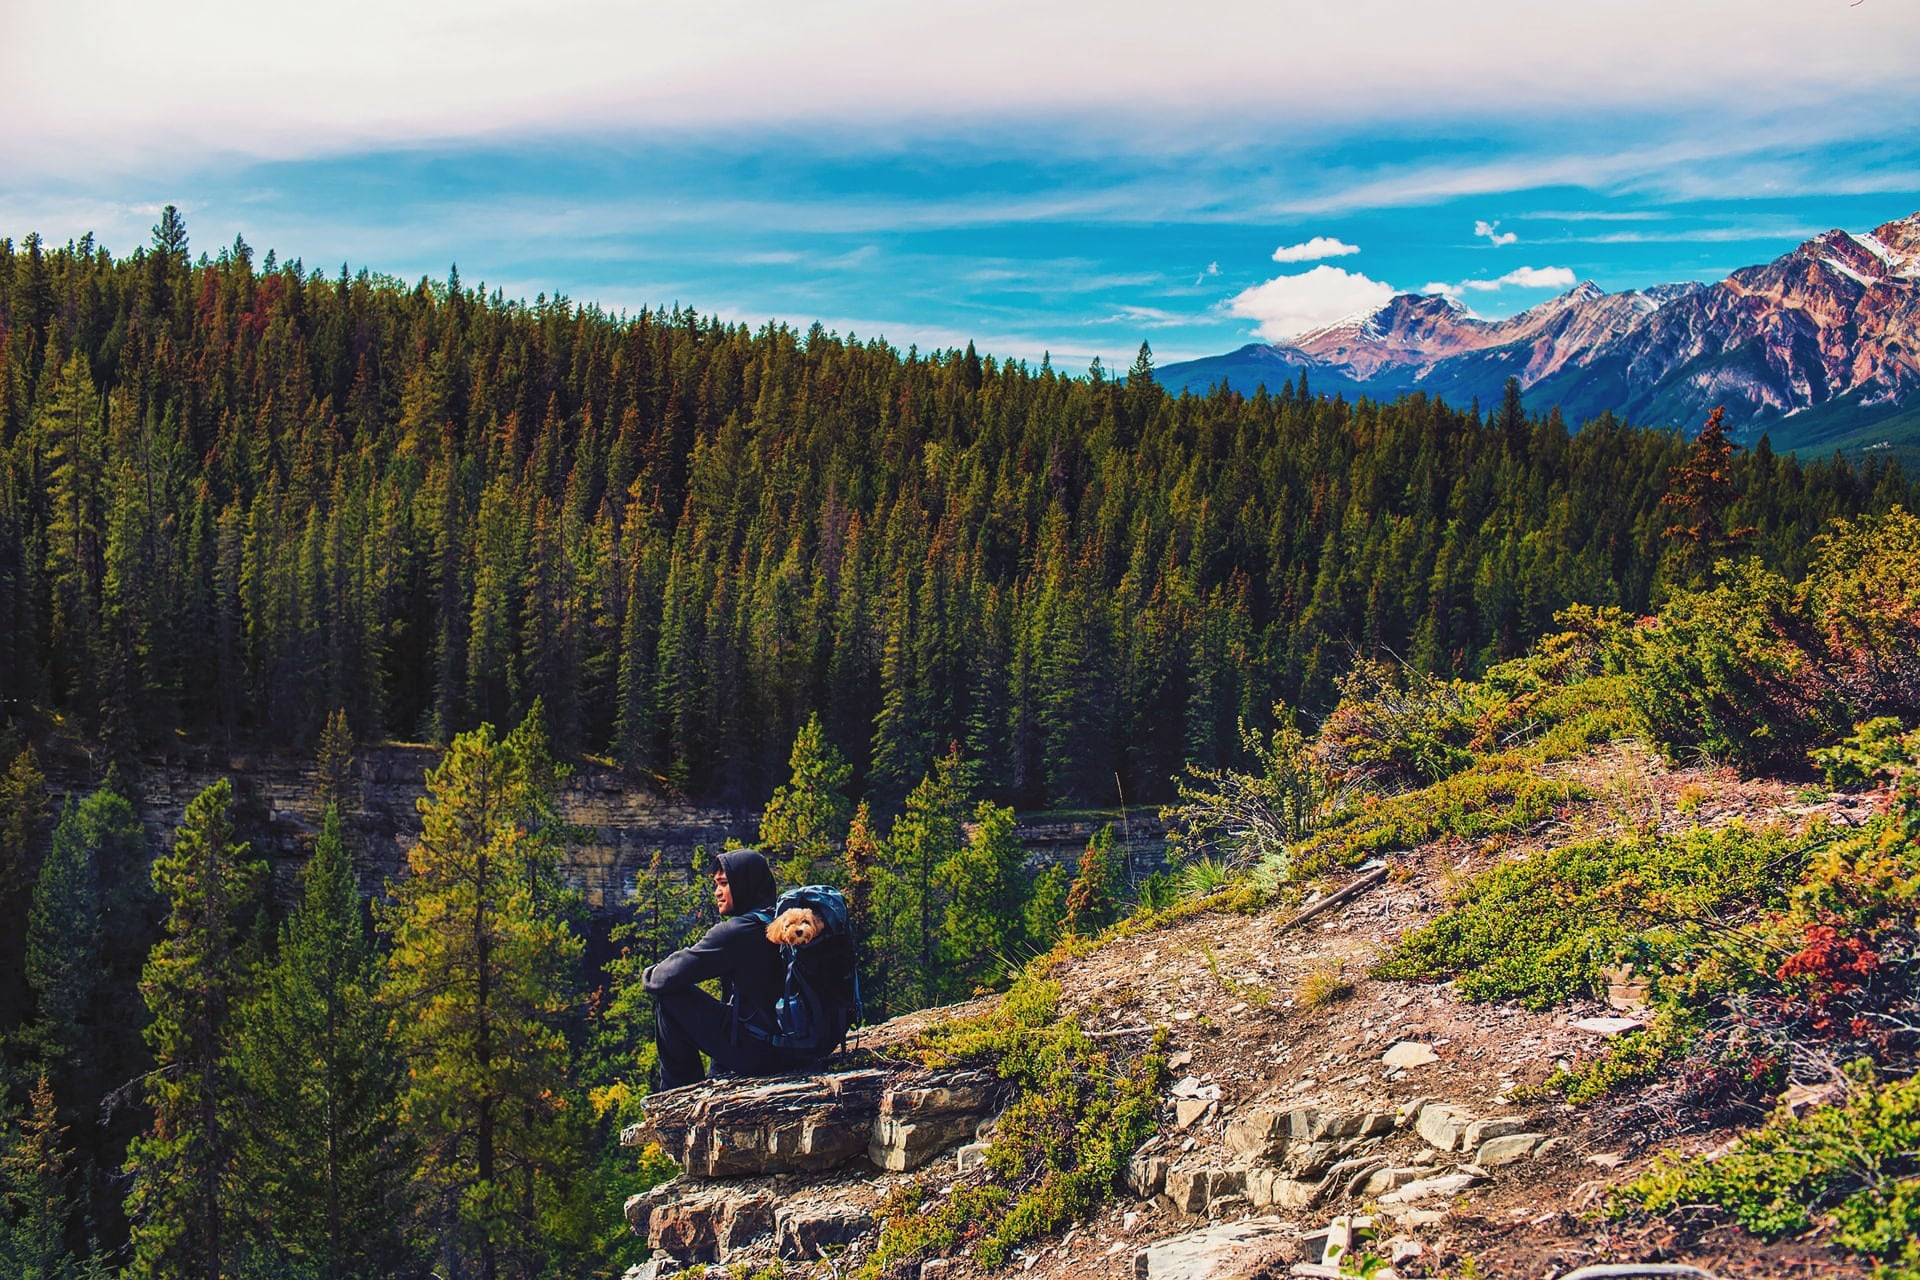 Enjoying the view of mountains and forest from the edge of a cliff at Maligne Canyon in Jasper National Park